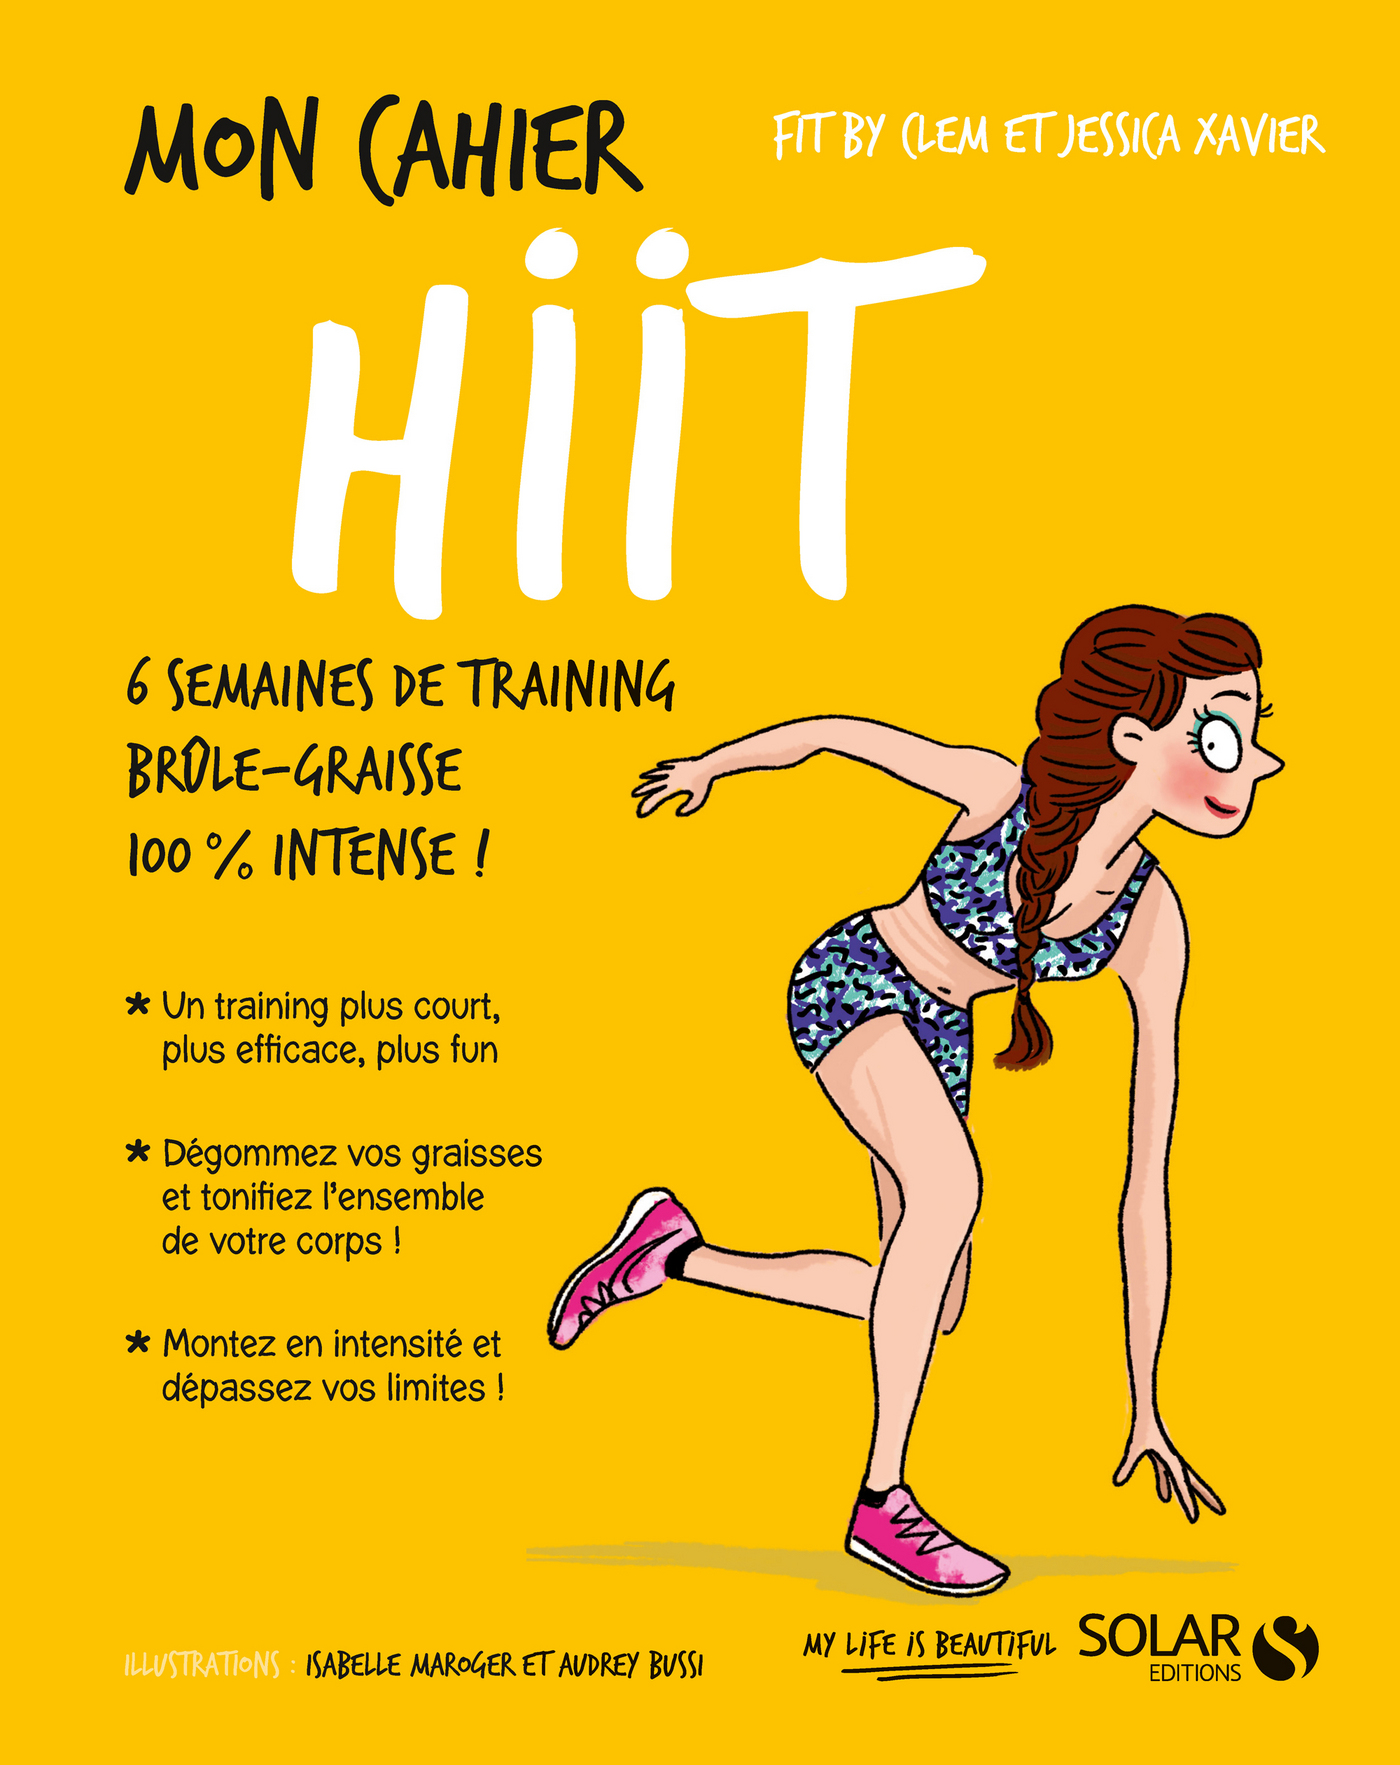 Mon cahier HIIT